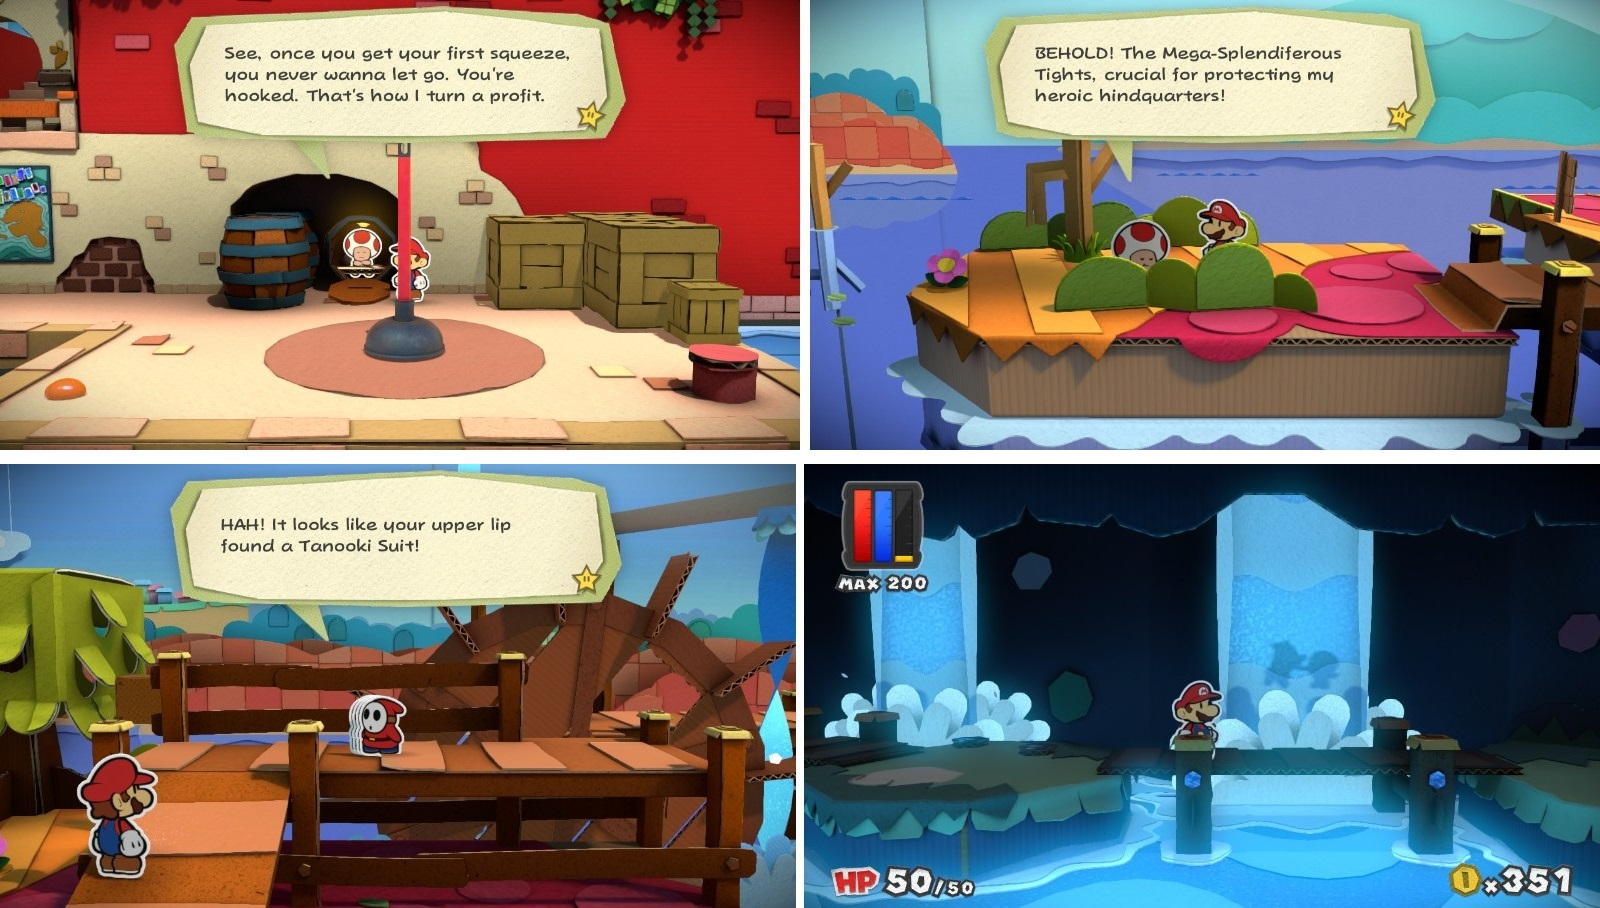 Nintendo Wii U, Paper Mario Color Splash, adventure game